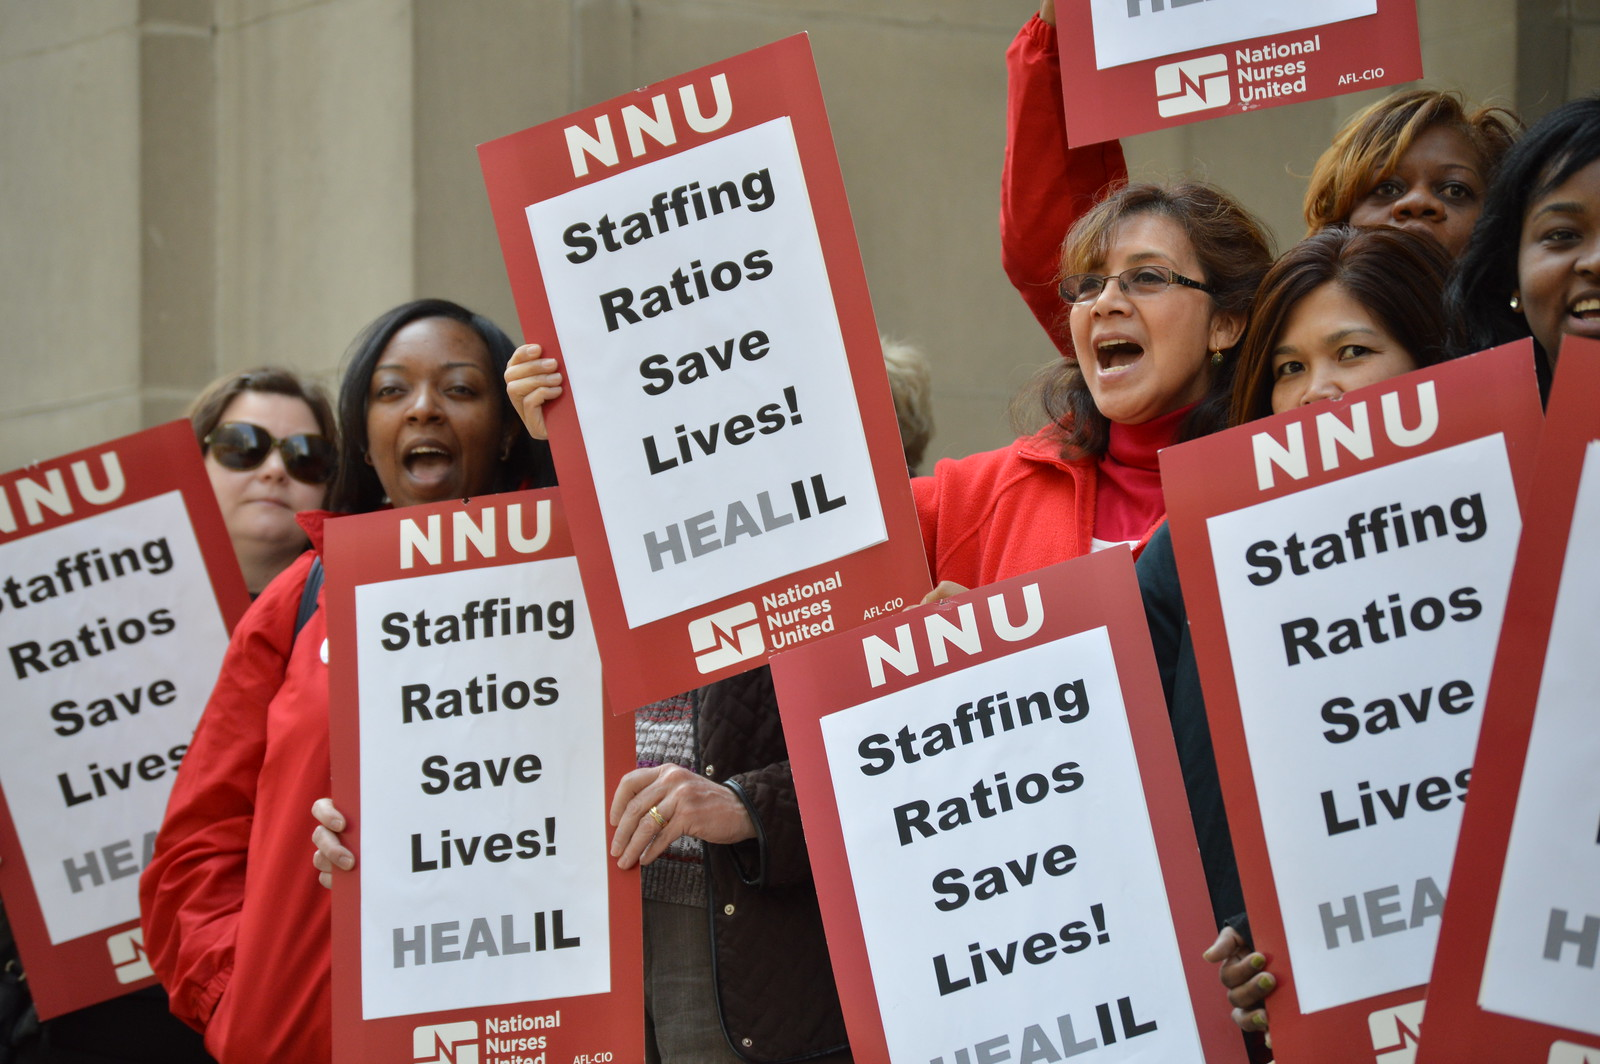 RNs rally for safe staffing ratios